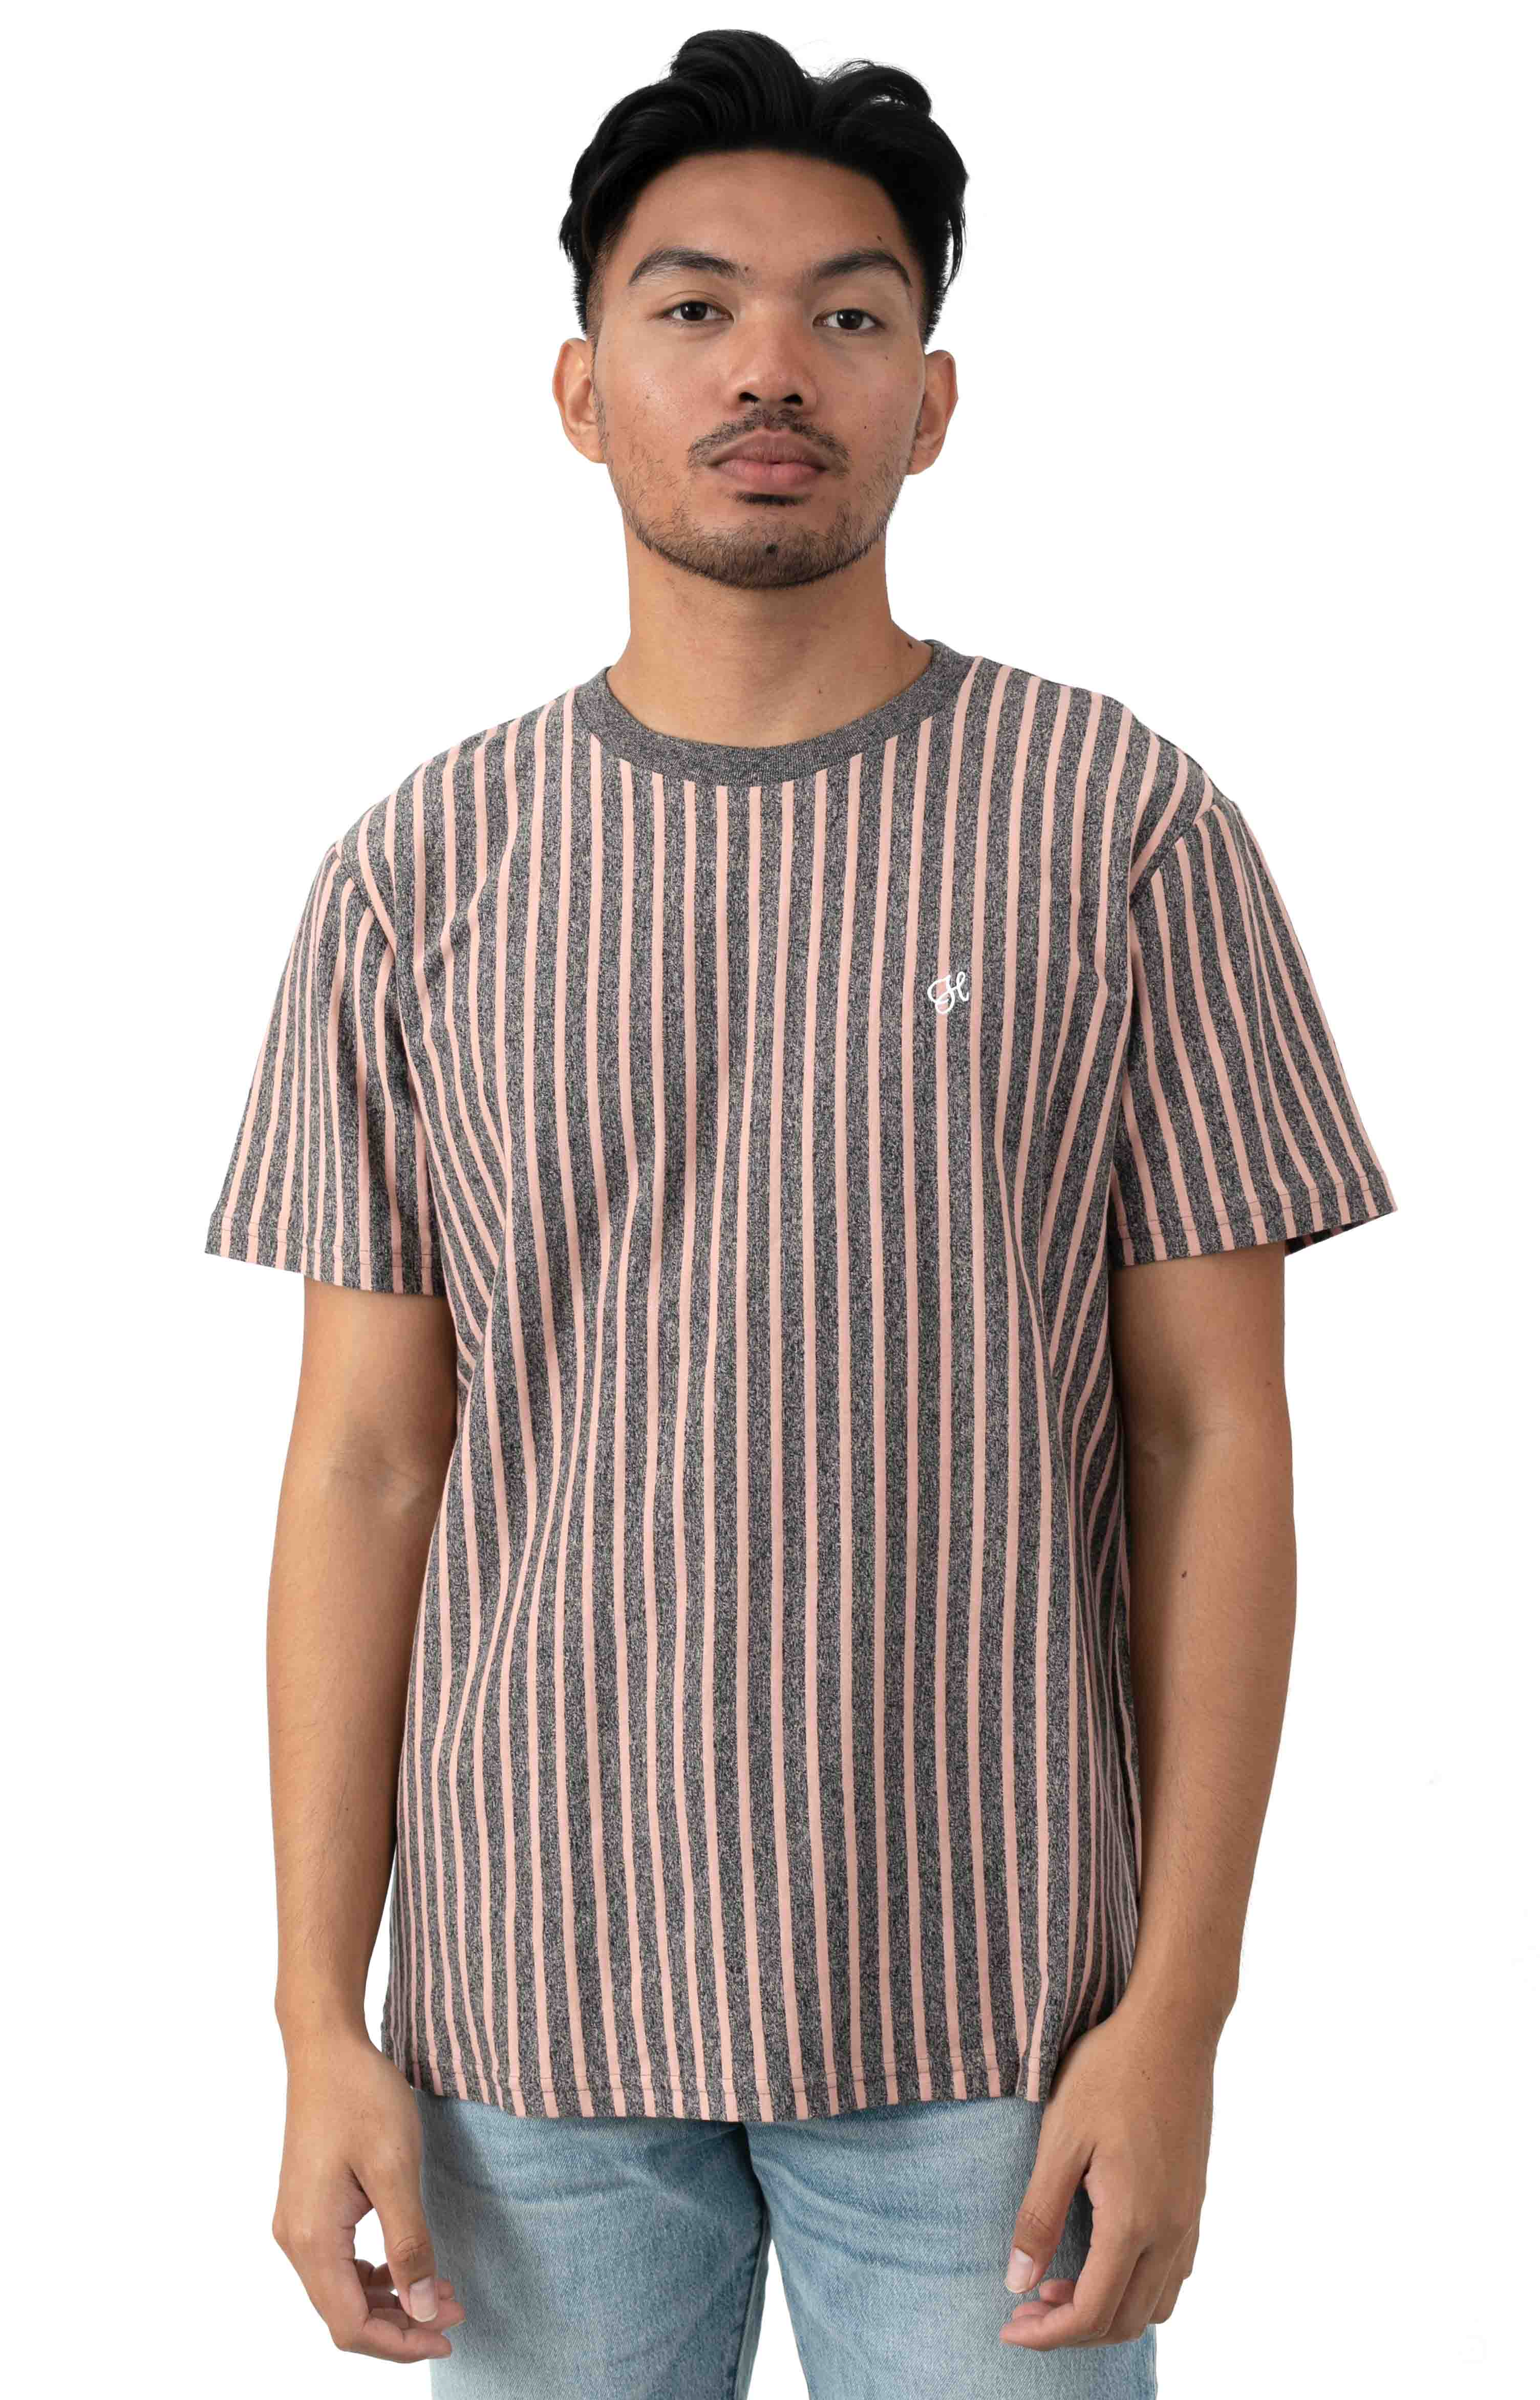 Overdyed Vertical Stripe Shirt - Coral Pink